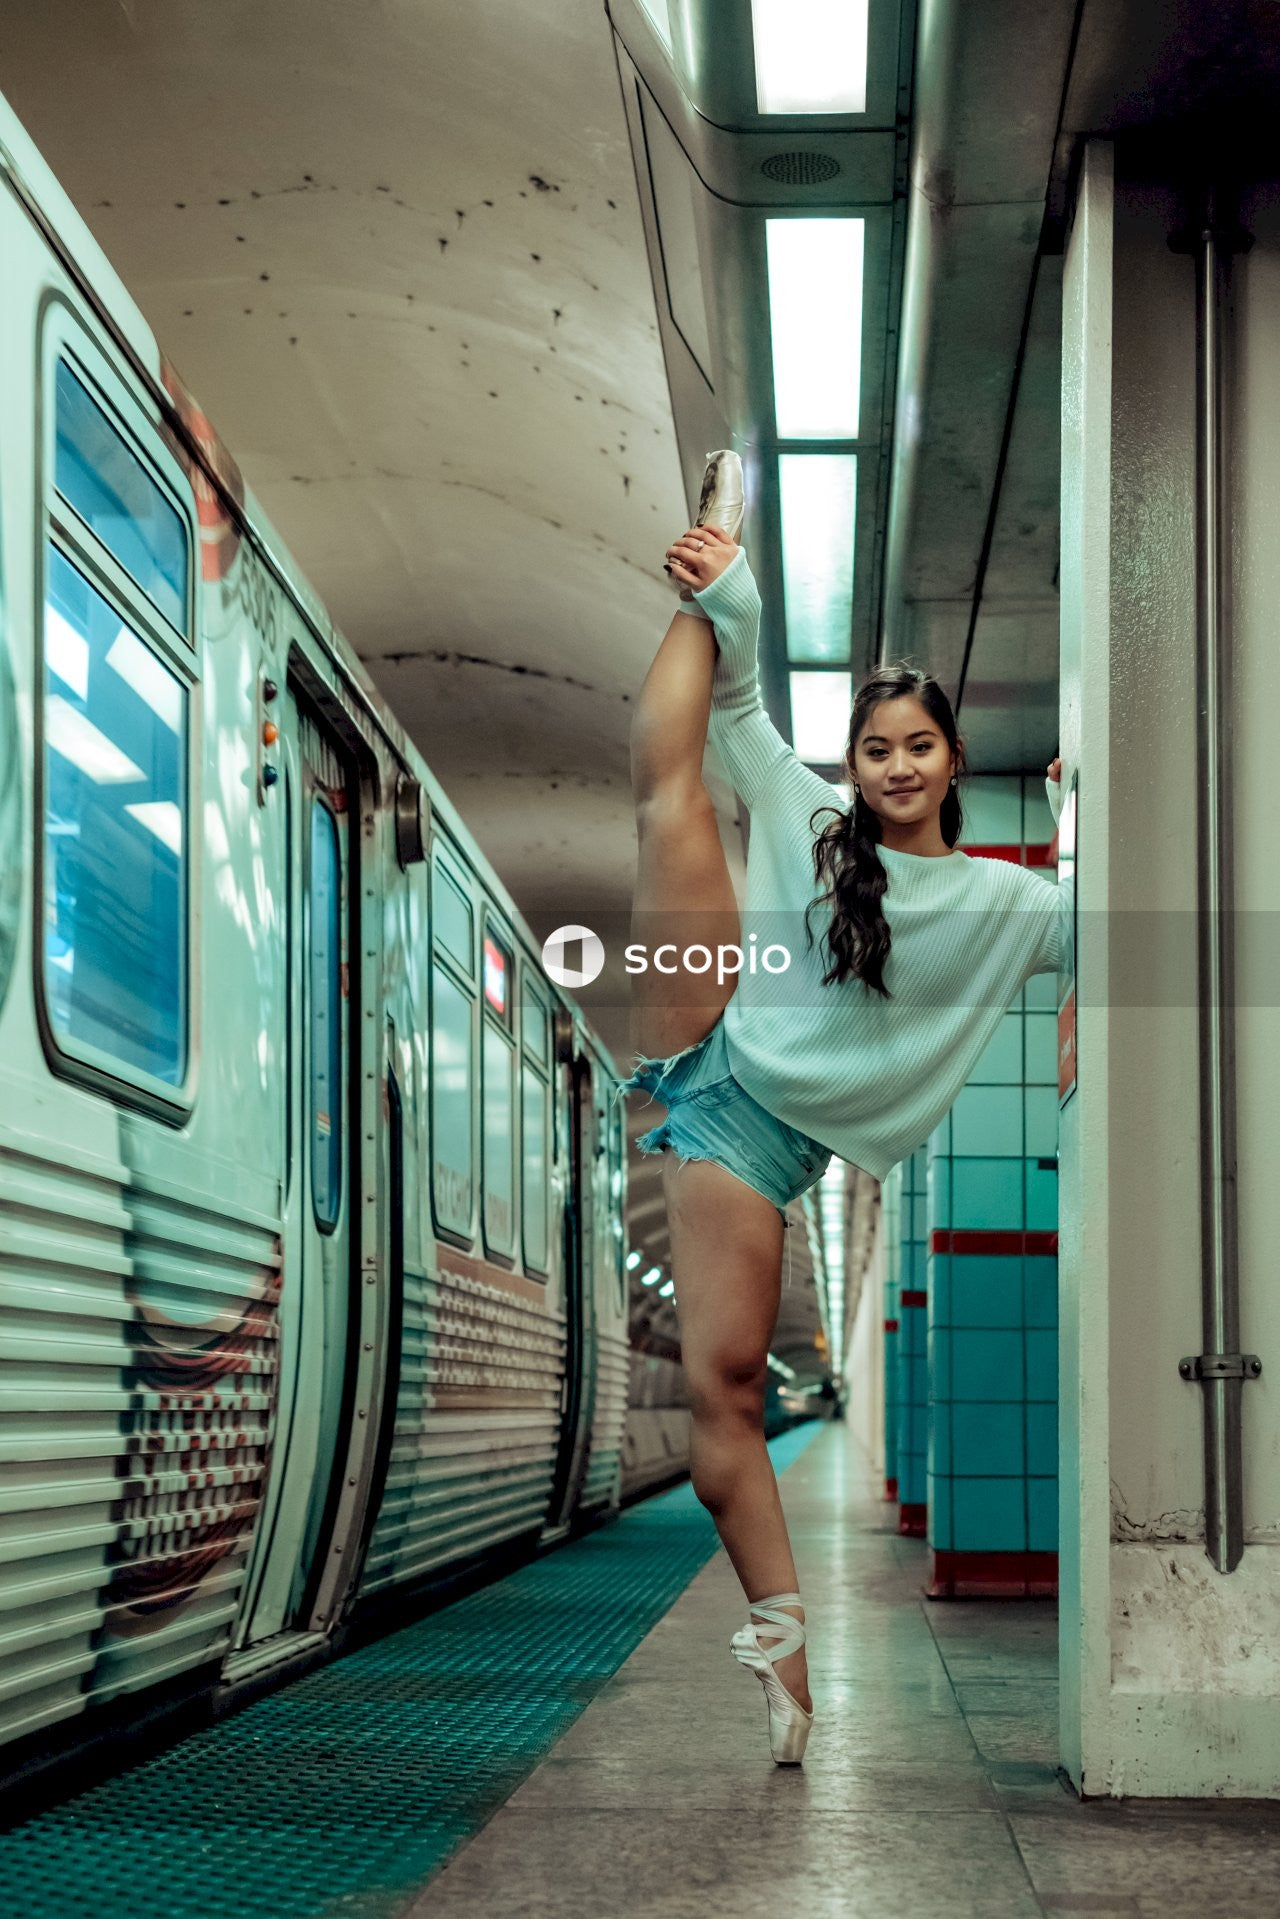 Young woman doing splits in subway station